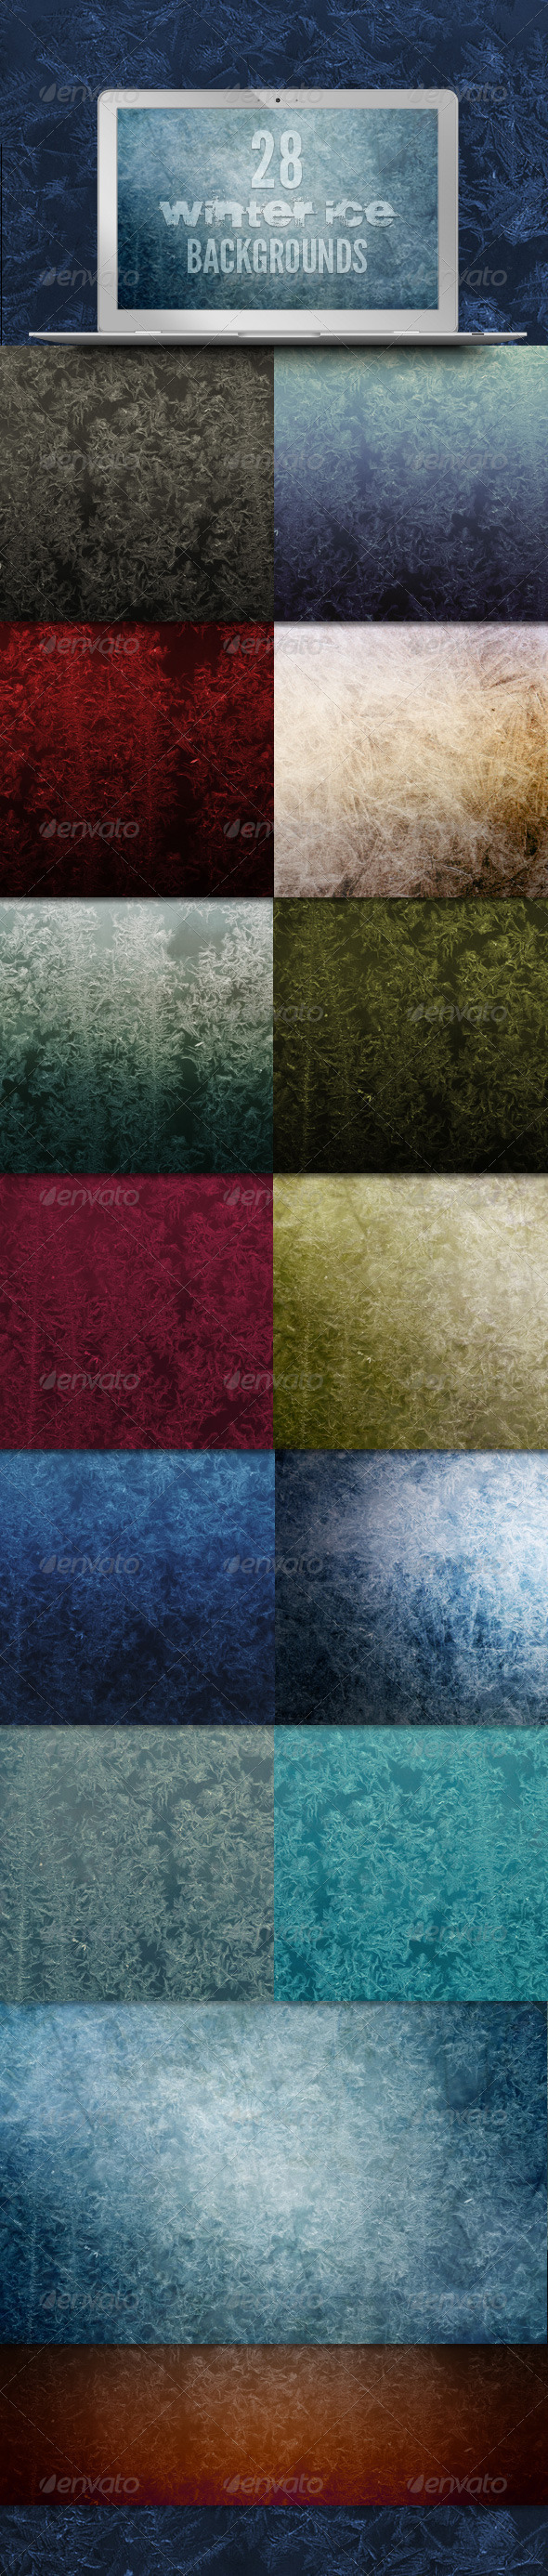 GraphicRiver 28 Winter Ice Backgrounds 3525570